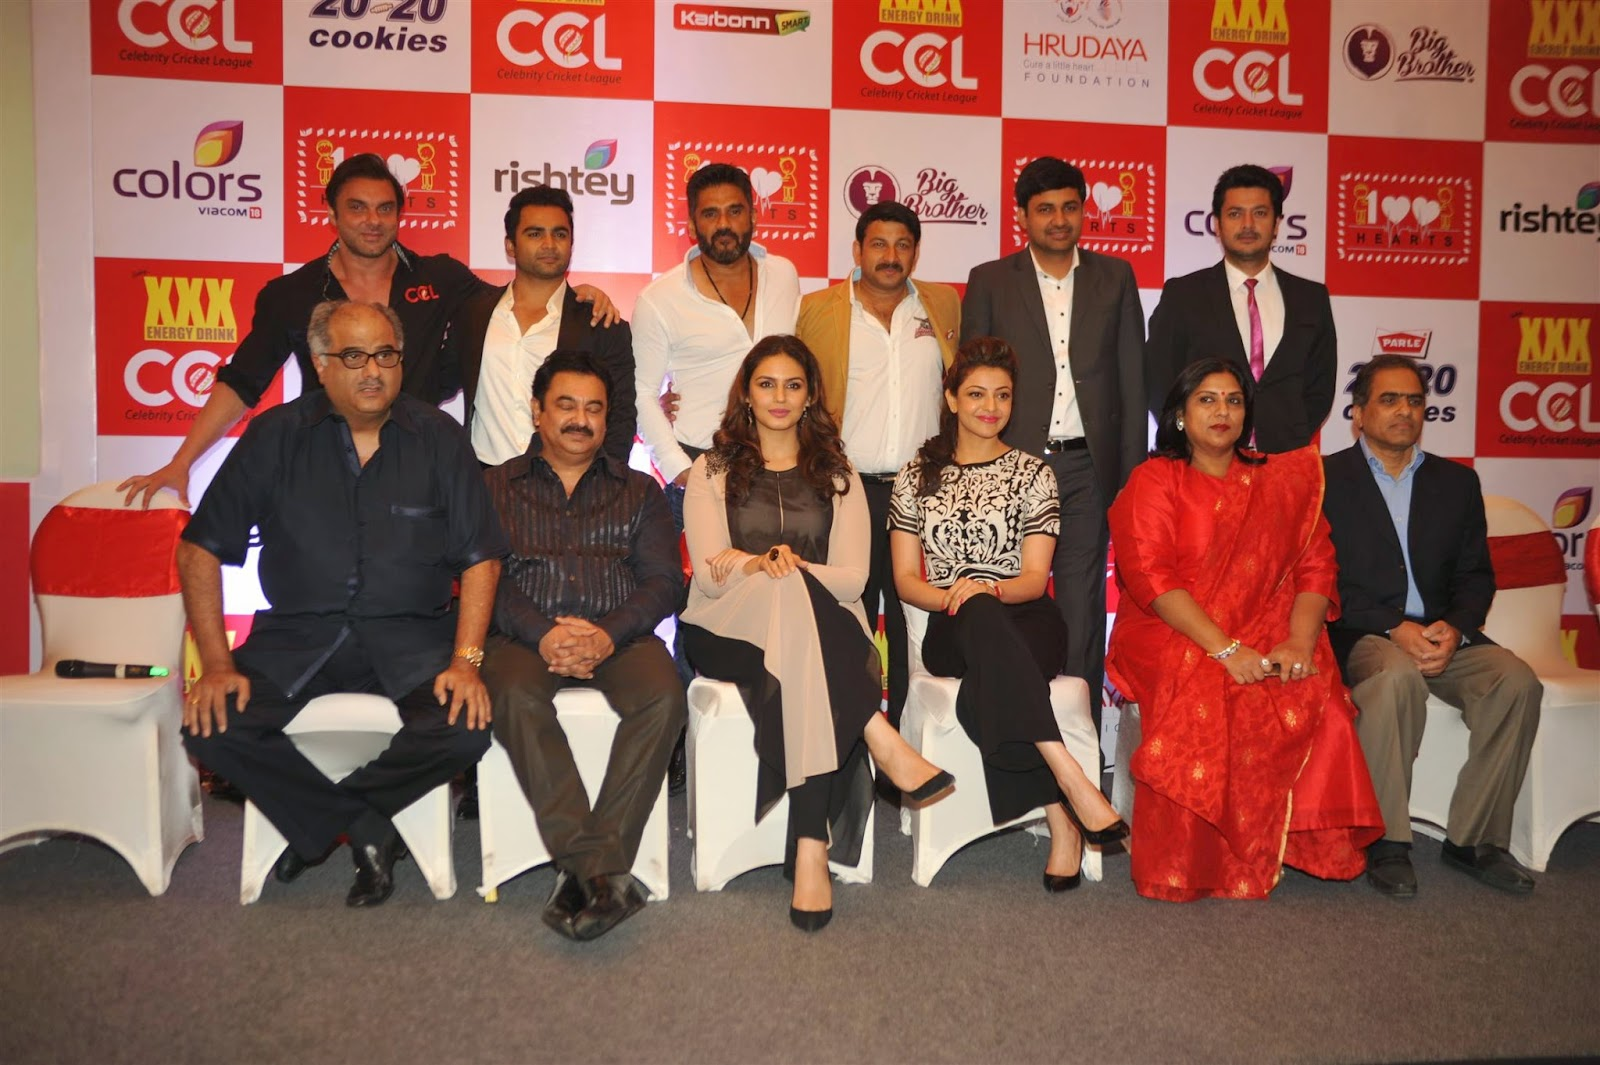 Celebs Launch of 100 Hearts A Social Initiative by CCL Pics